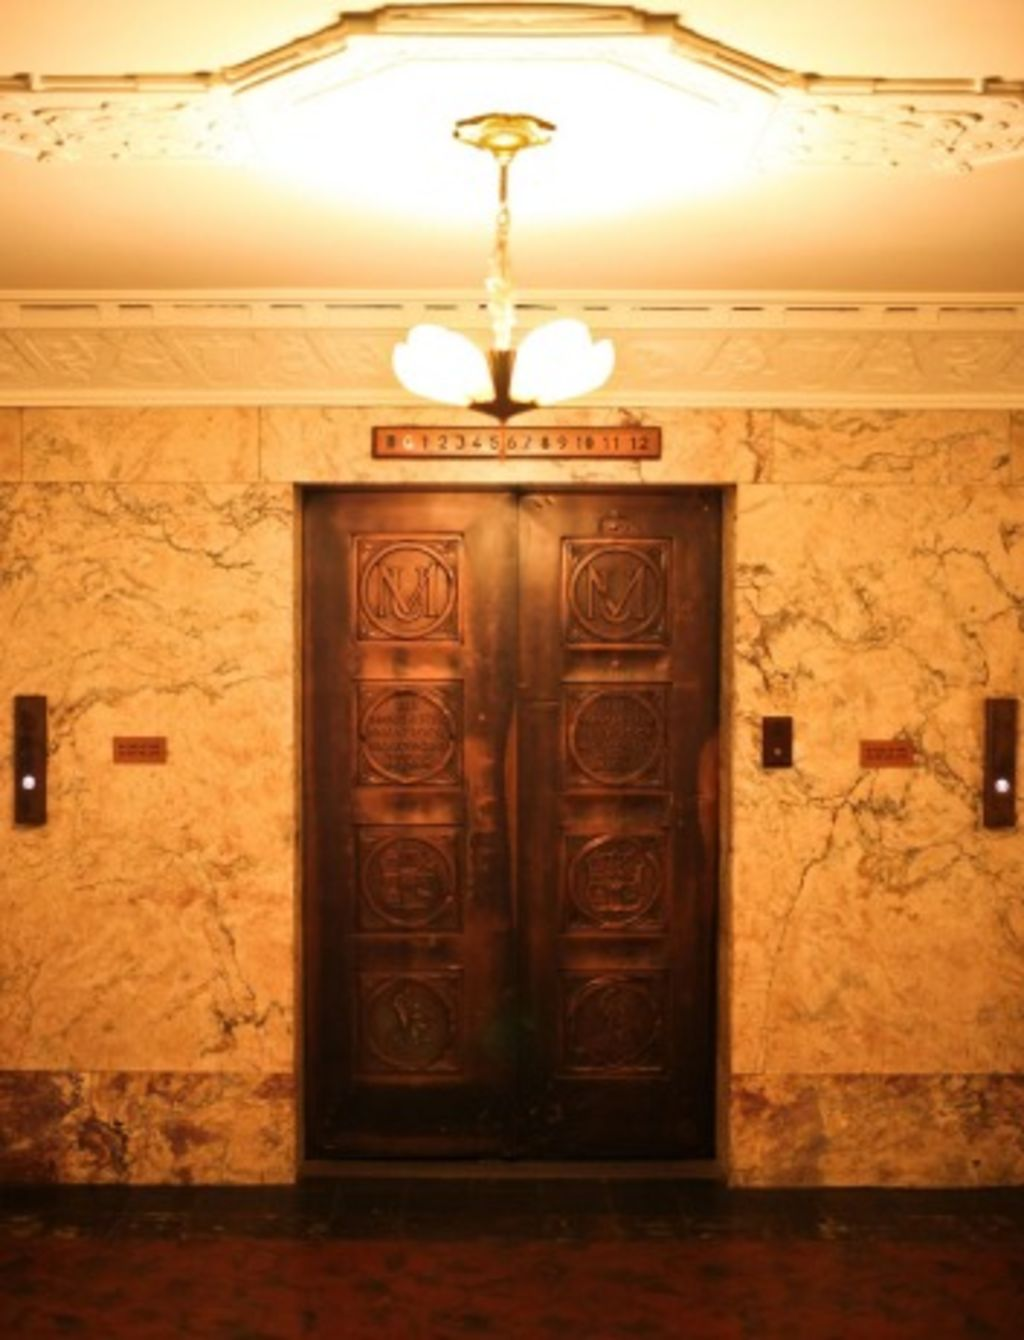 The elevator inside the building. Photo: Anu Kumar